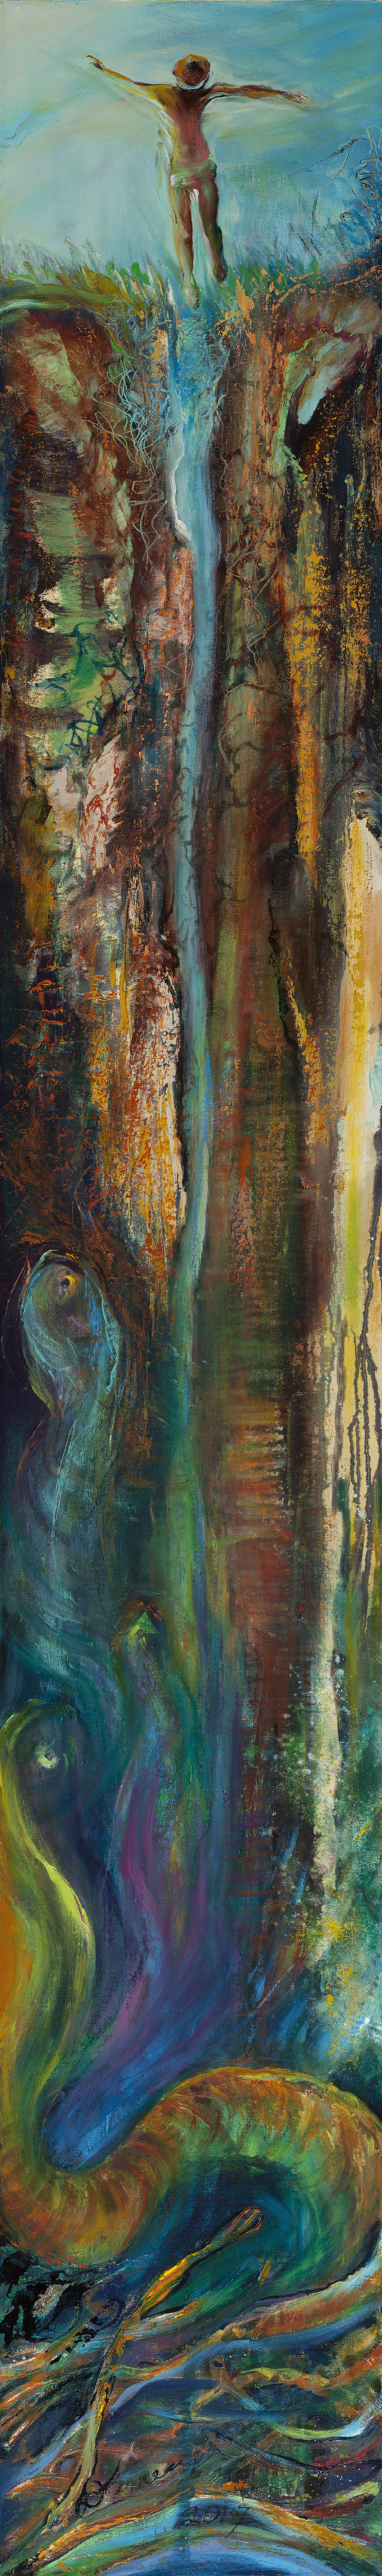 oil painting, poetry sourced, remembrance, death, awakening, beauty